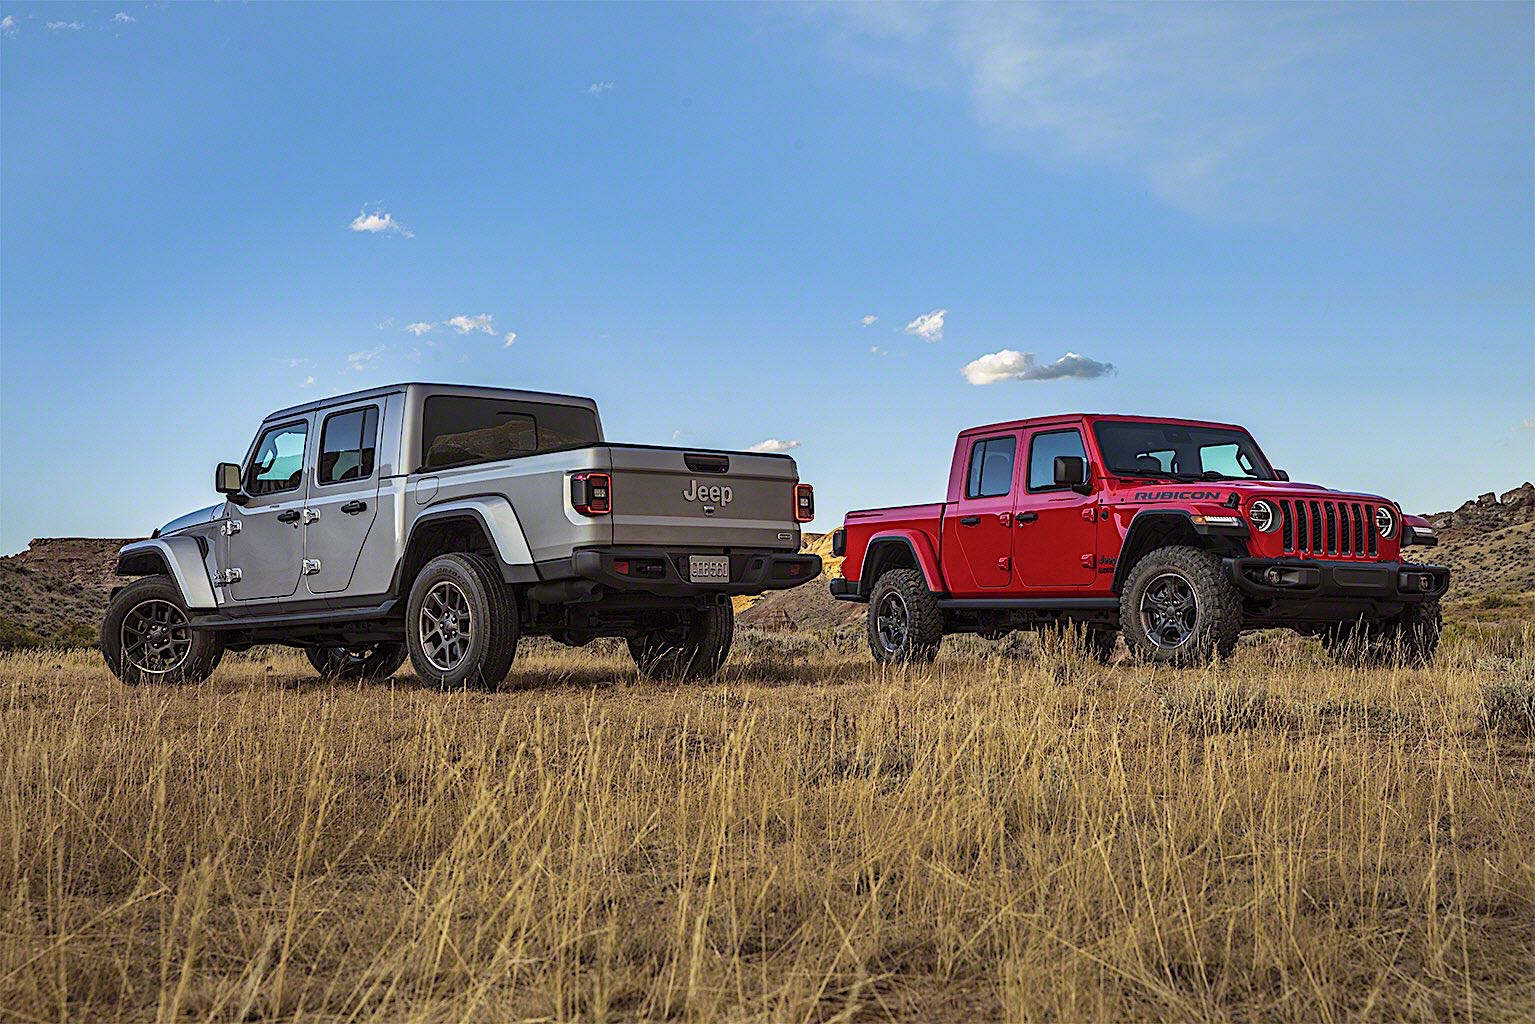 2020 Jeep Gladiator Pickup Truck Everything You Need To Know And Then Some